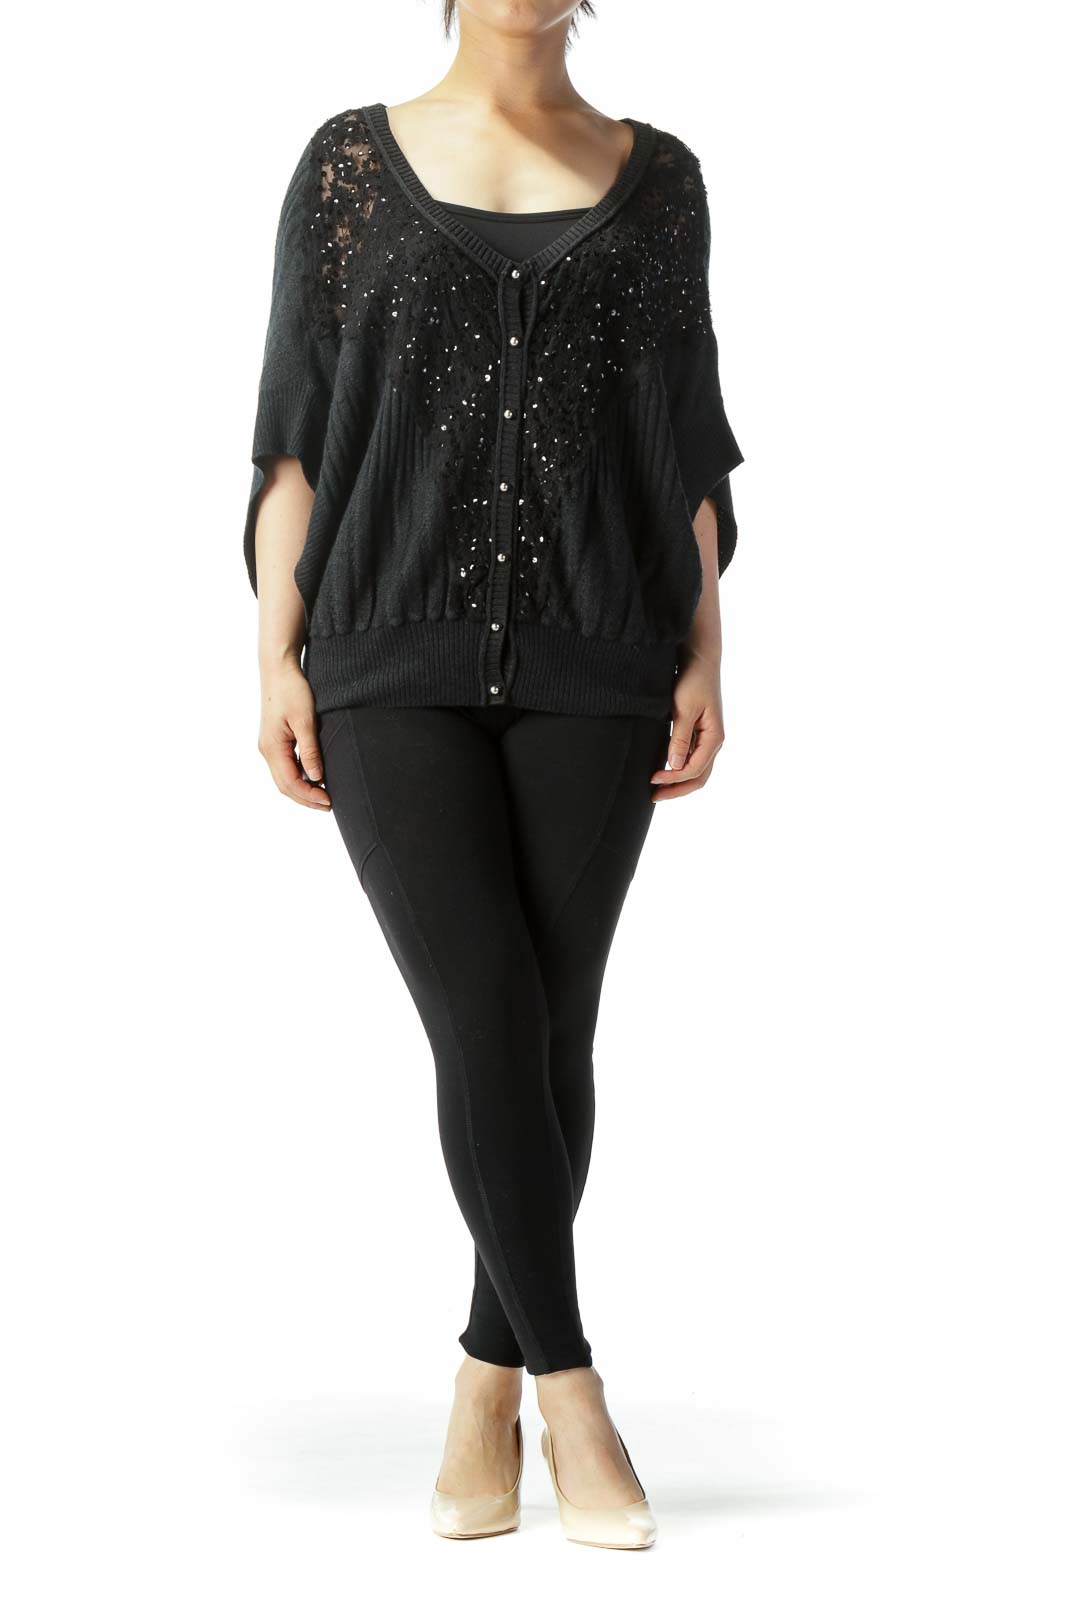 Black Sequin and Lace Front Bat-Sleeve Short Sweater